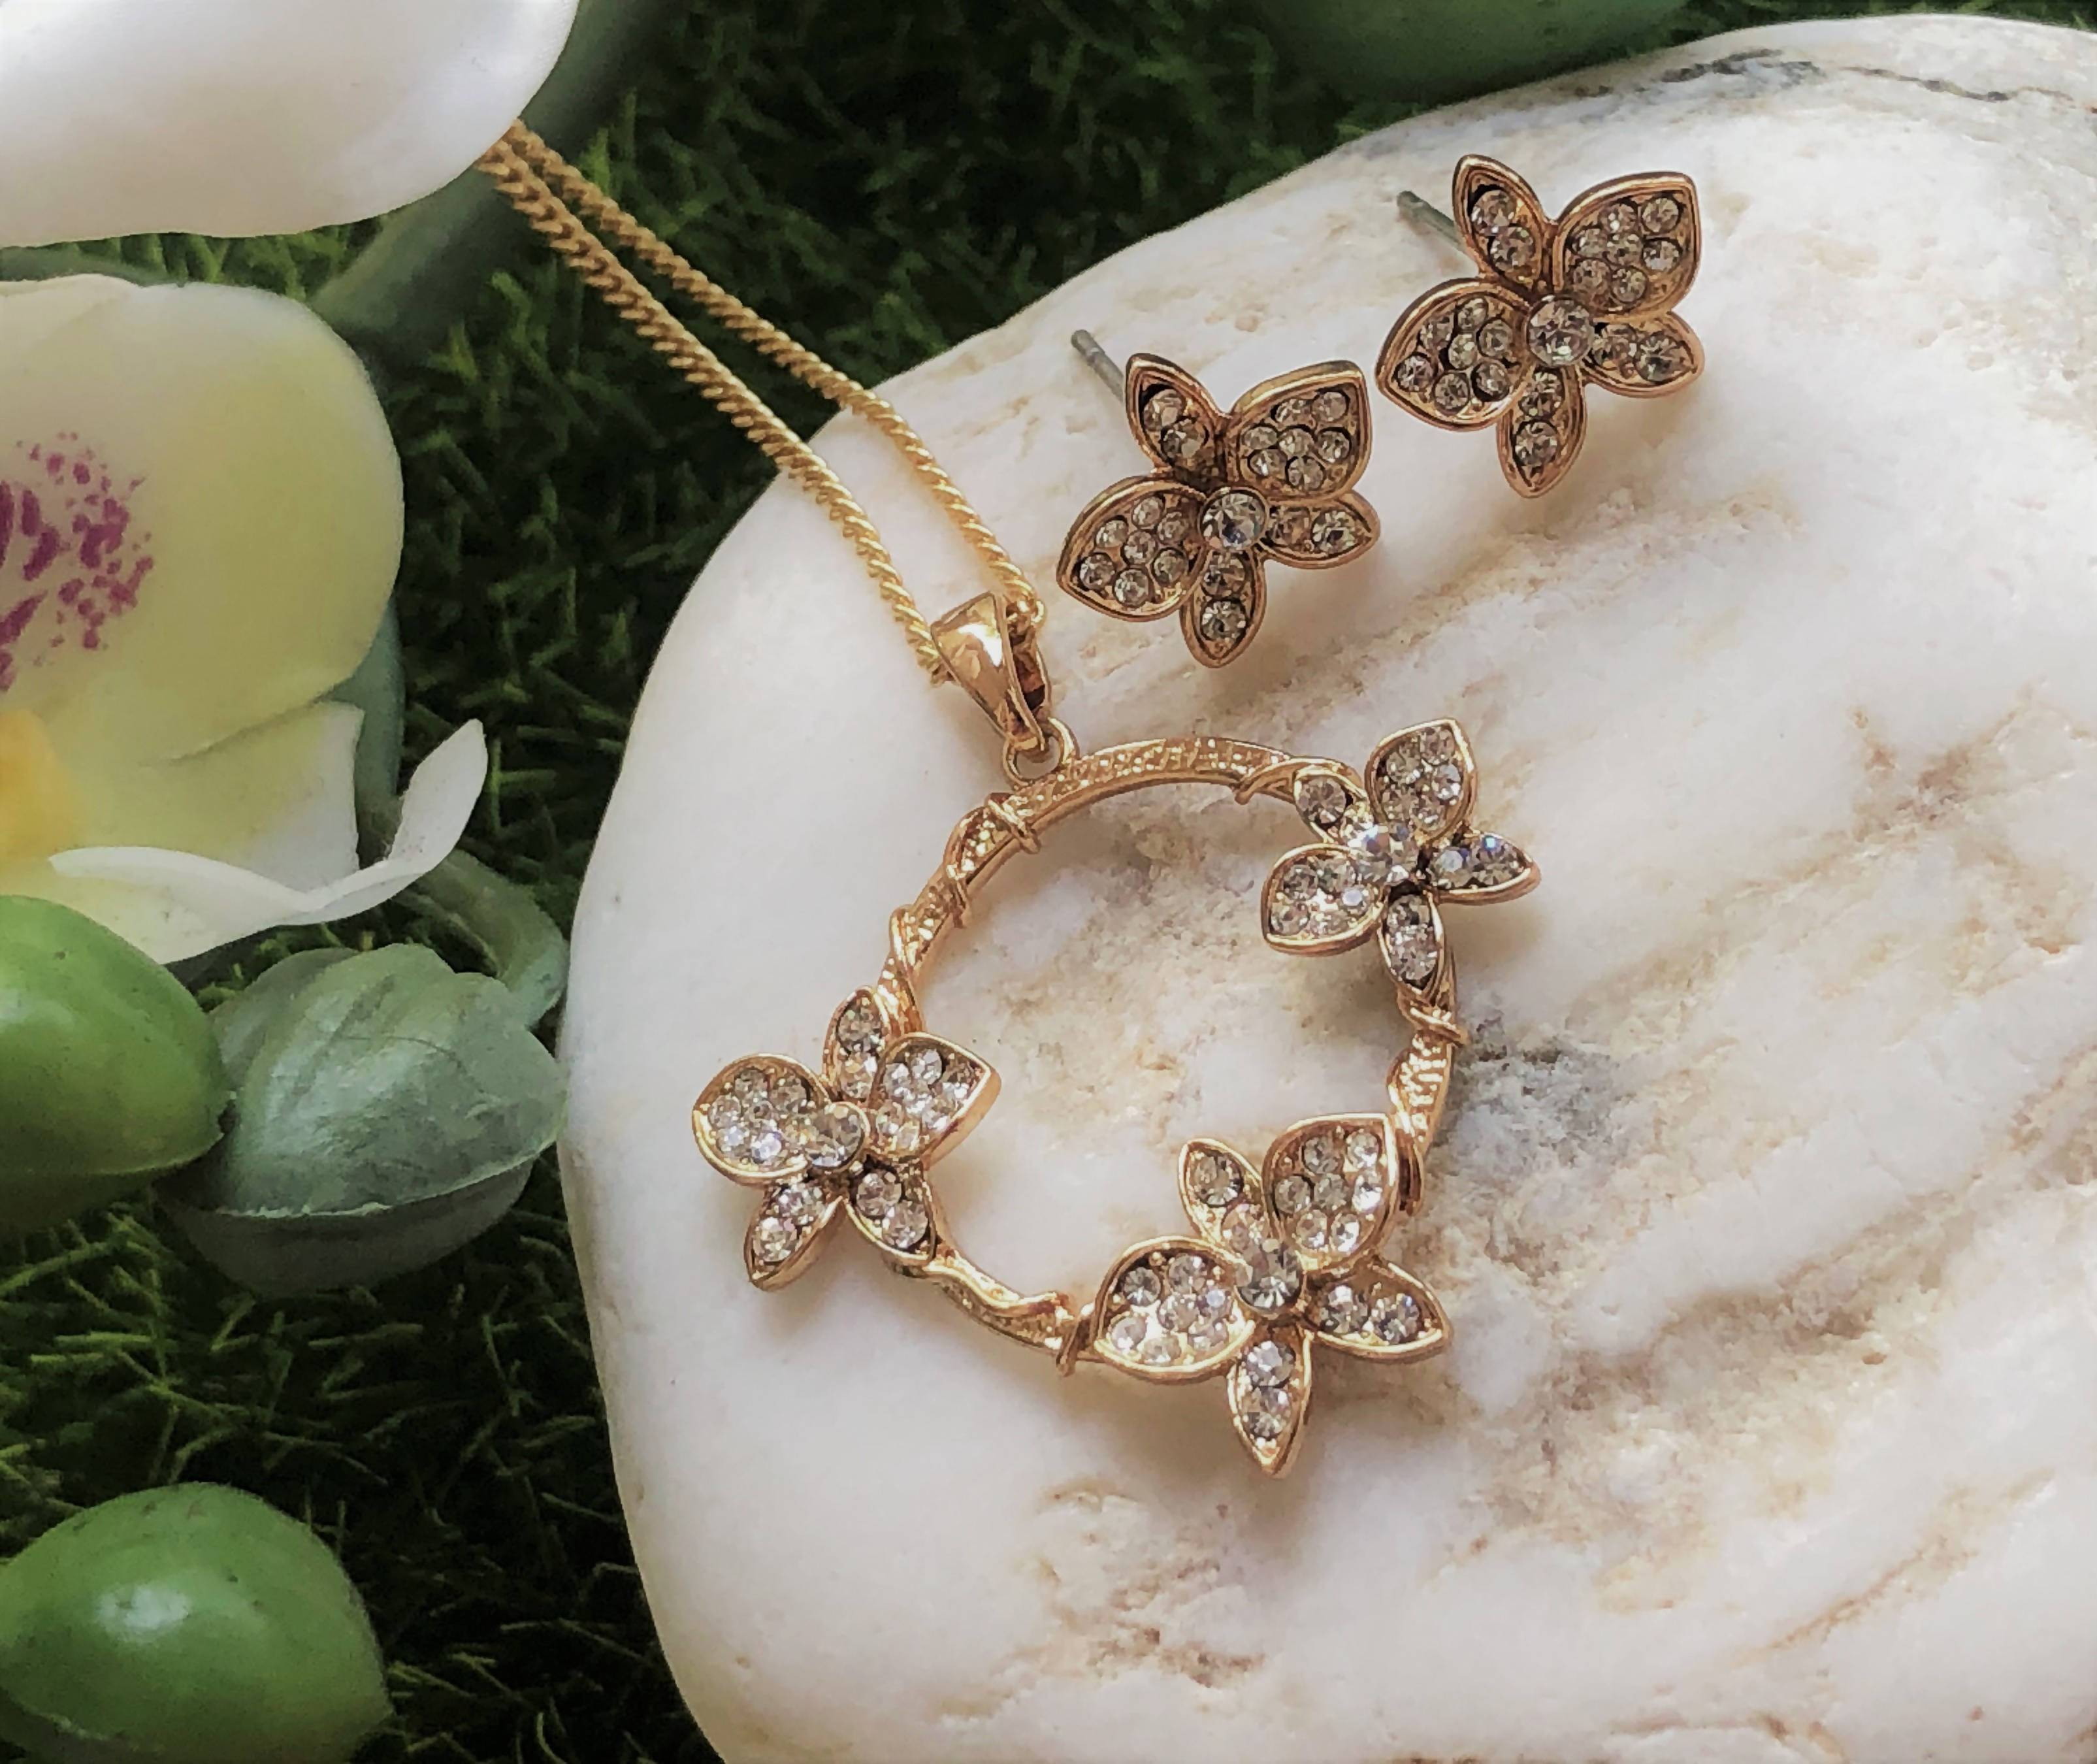 Cattleya: Rose Gold Plated Orchid Pendant Embellished with Crystals - Pendants - Forest Jewelry - Naiise